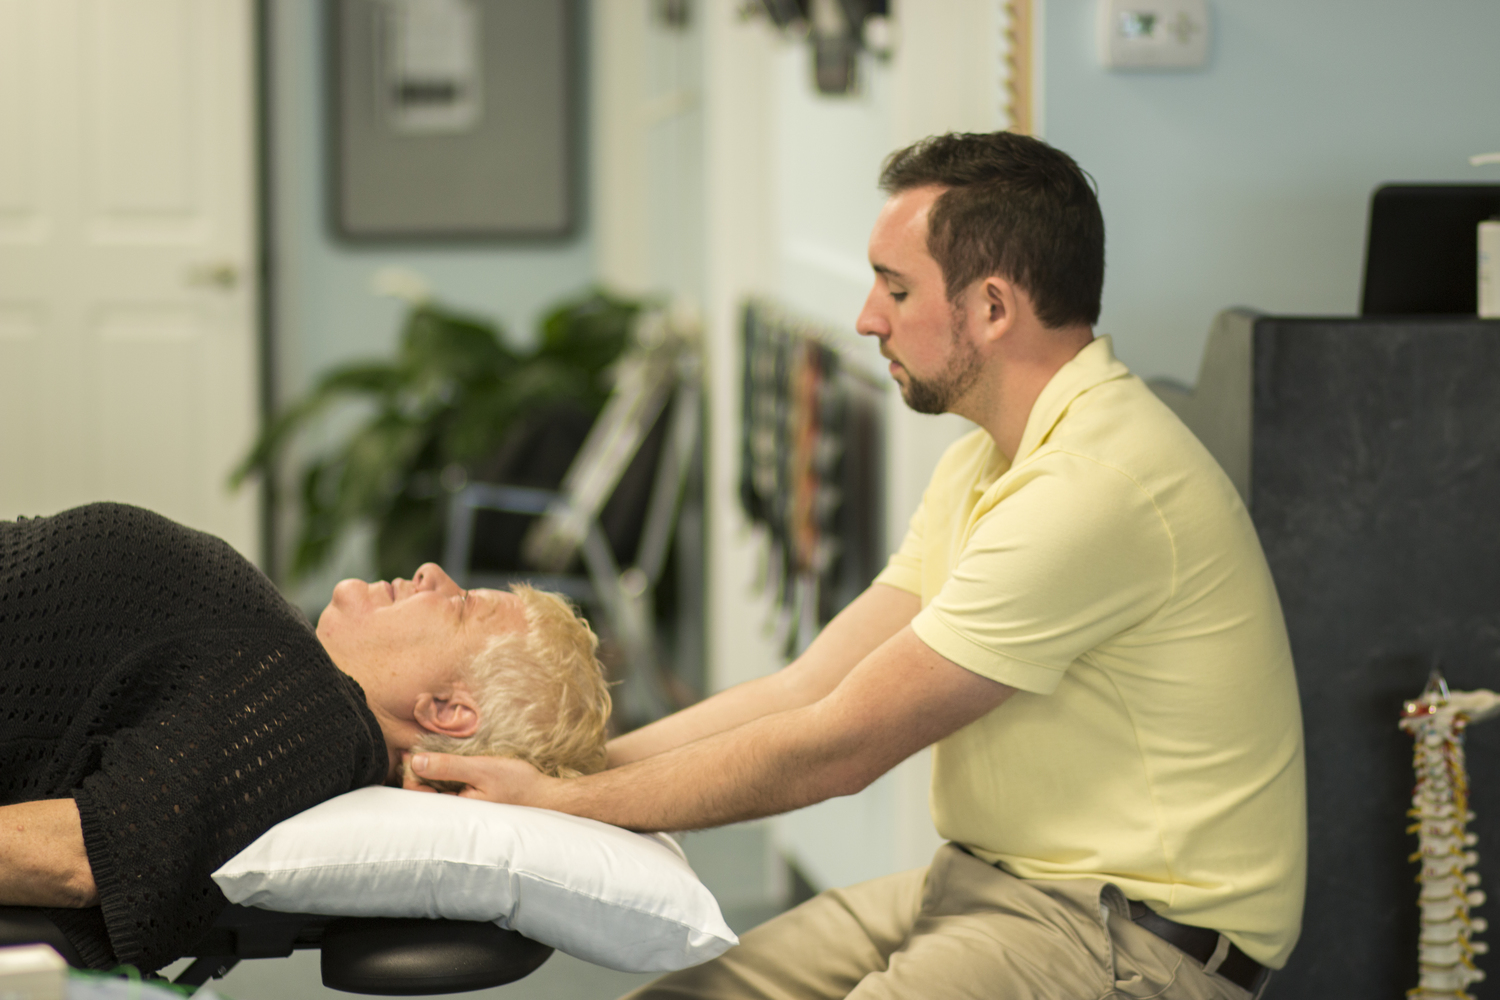 Advancement physical therapy - About Us